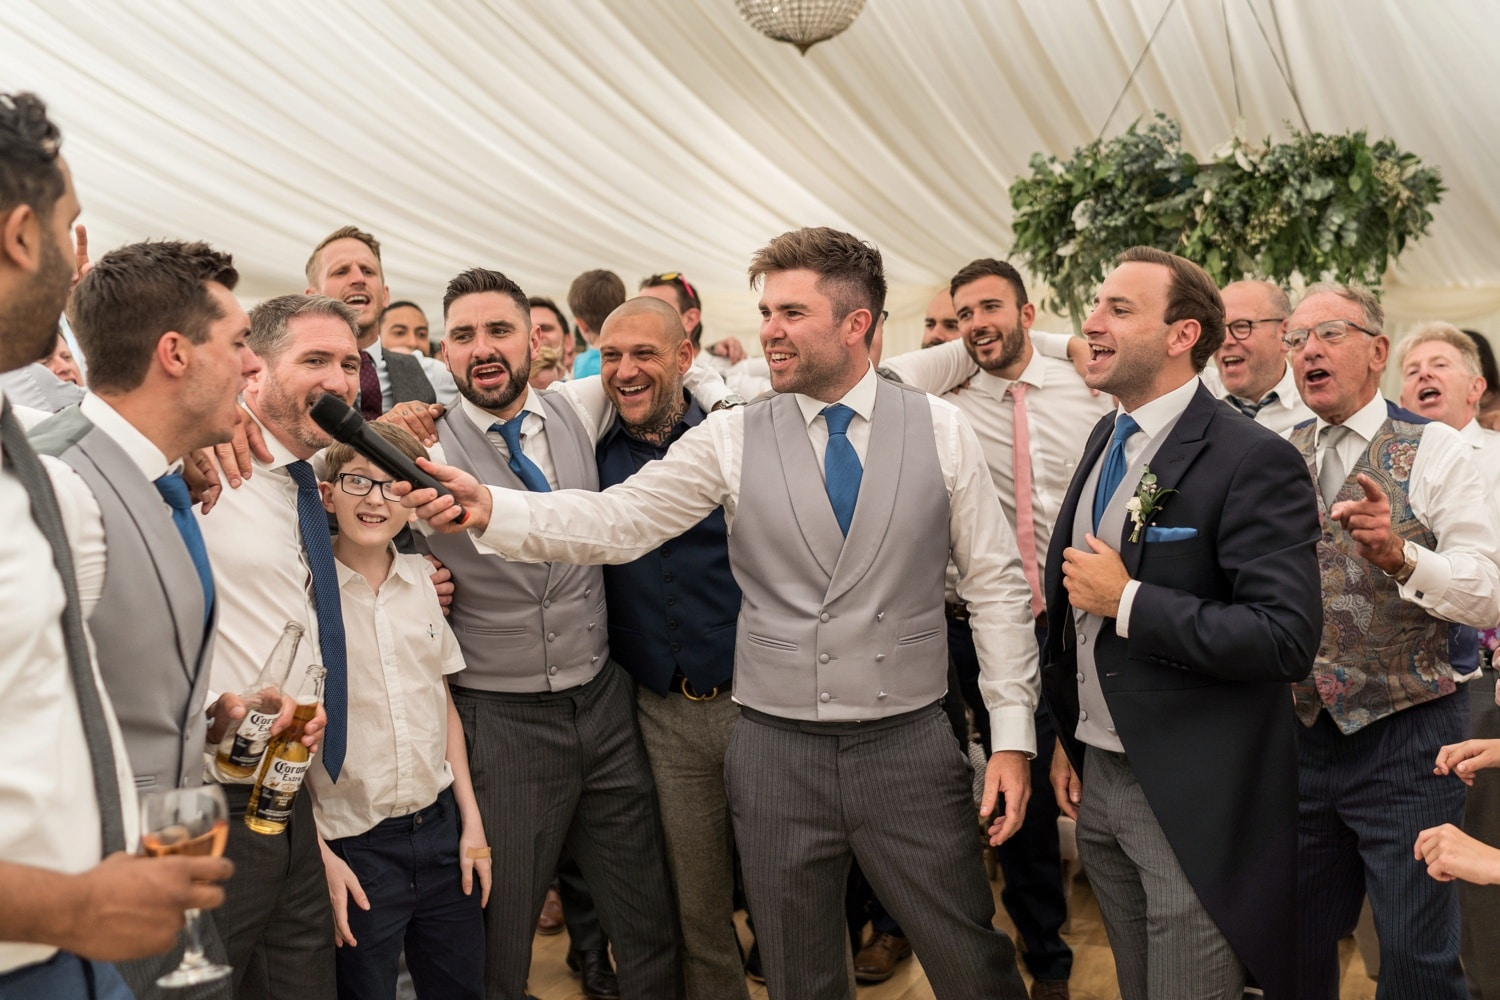 South Wales wedding in marquee